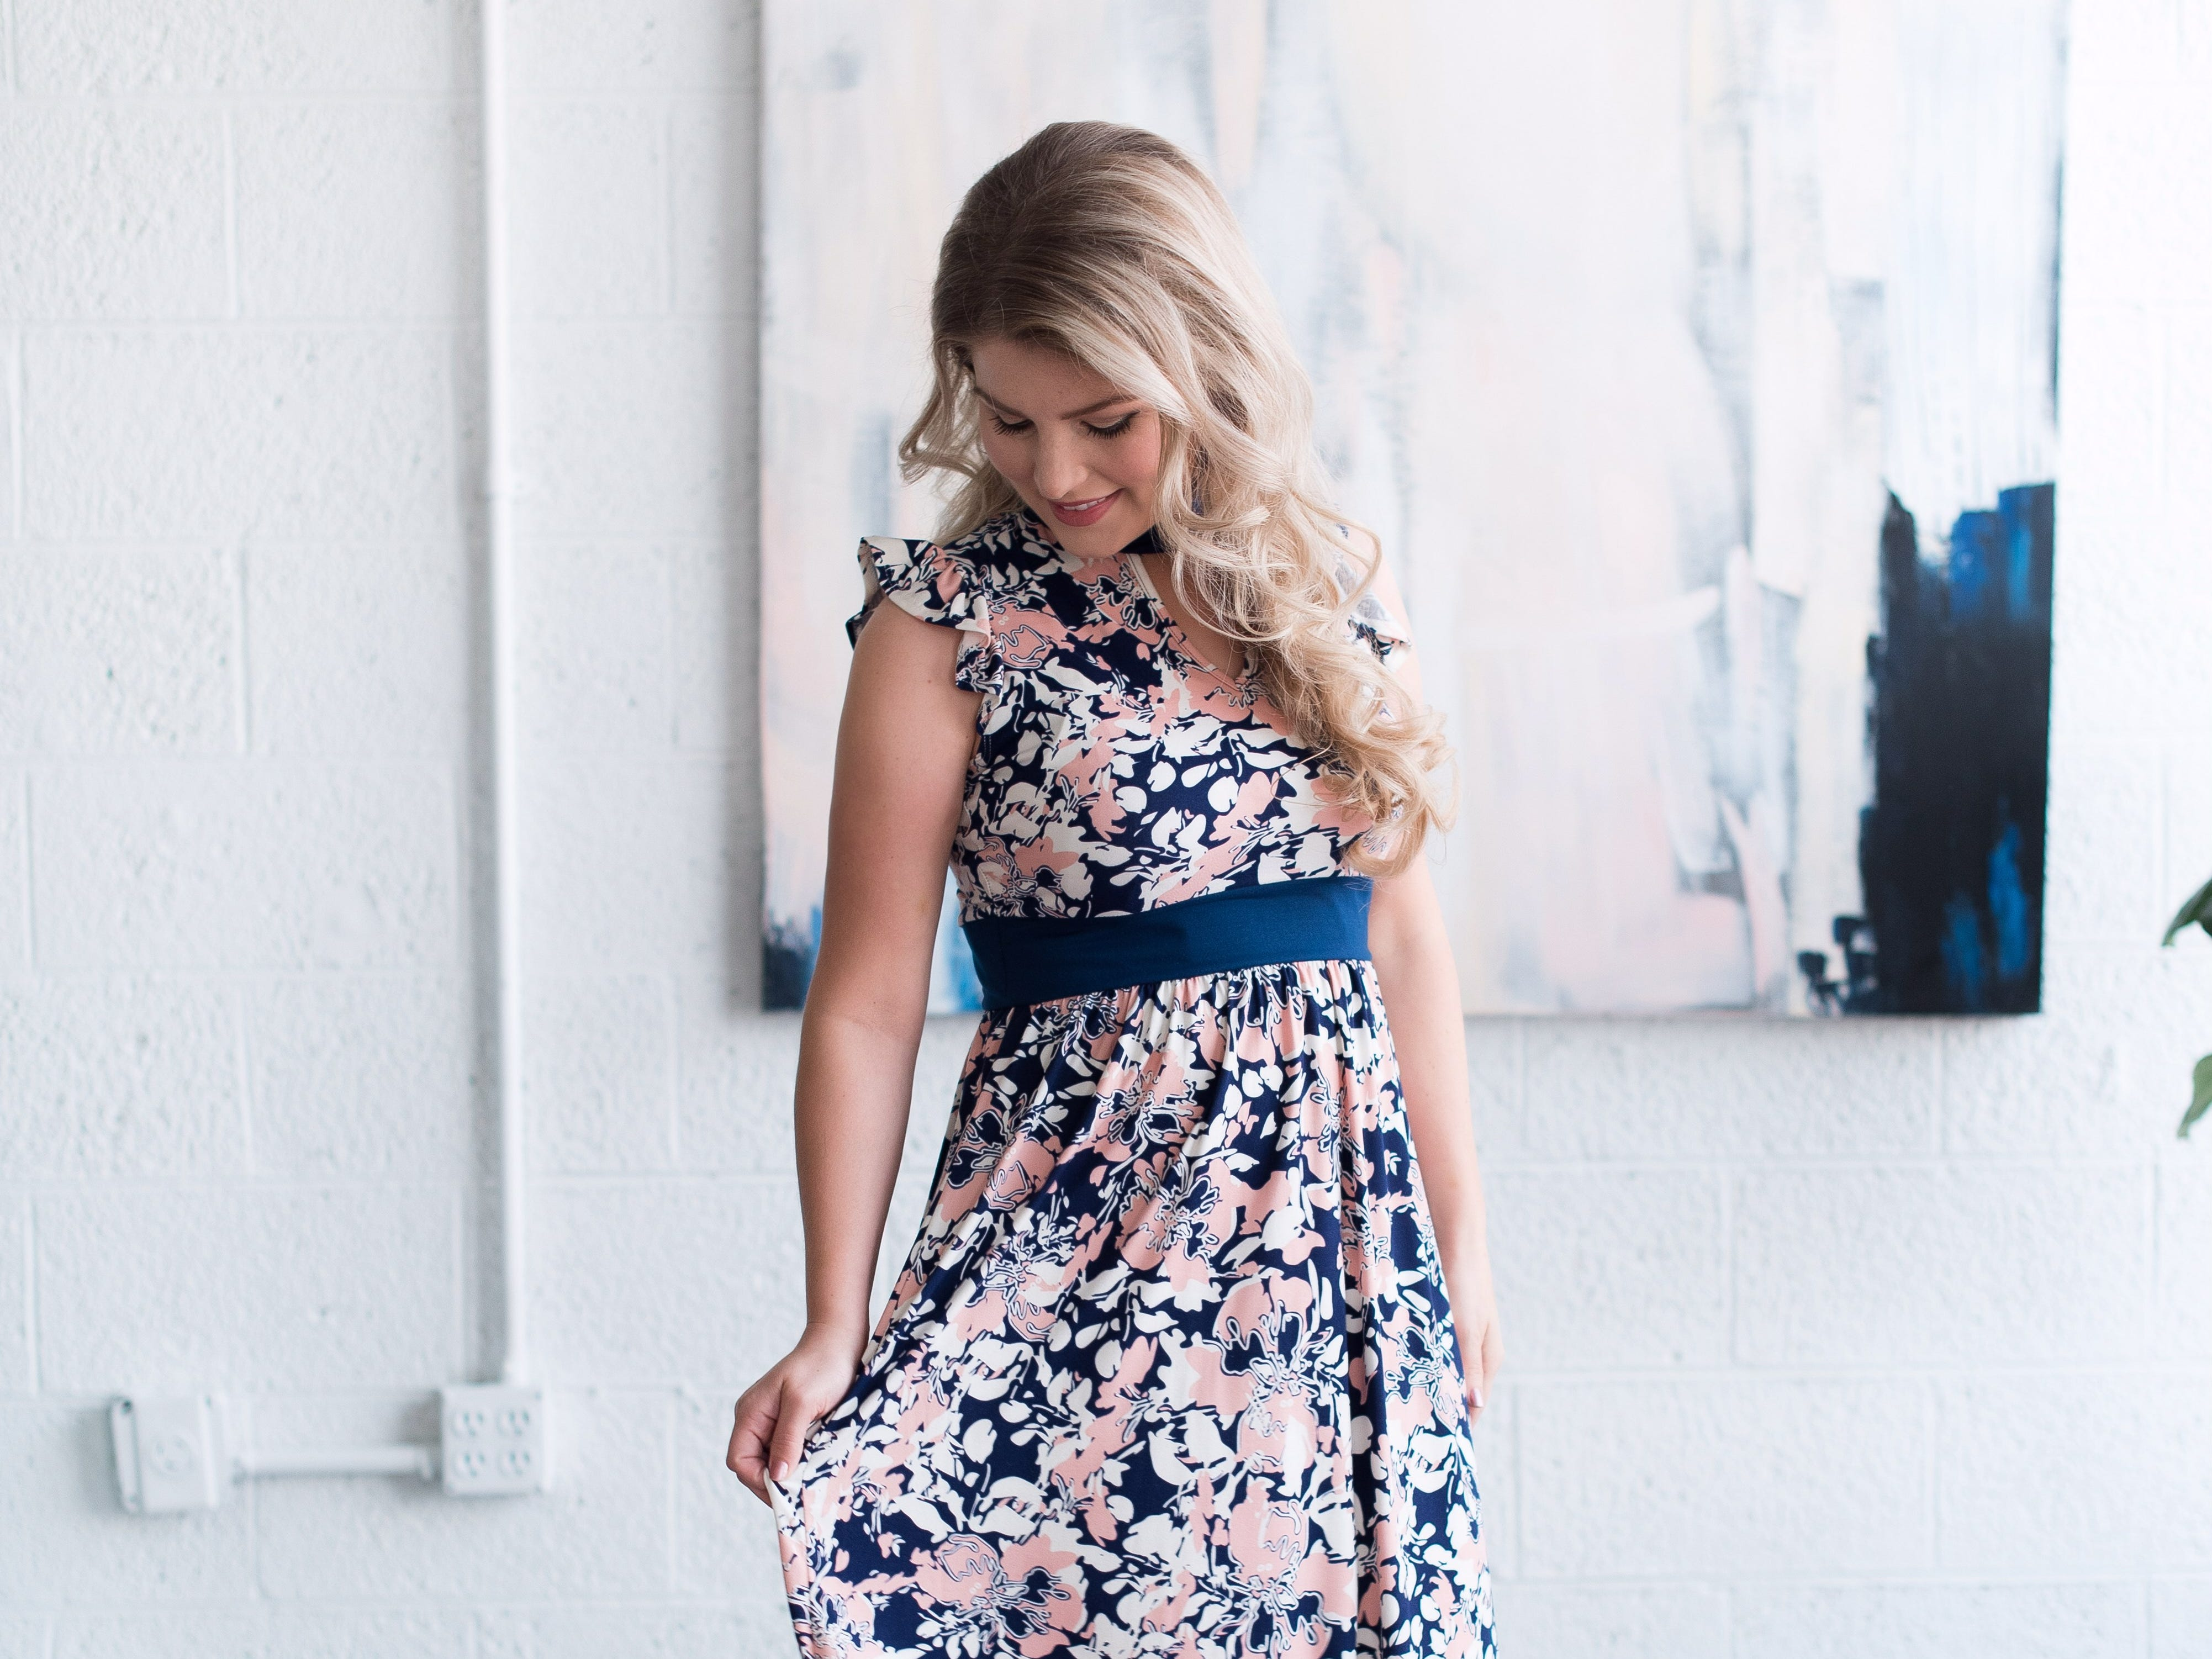 Erin Paine models a dress from Bates Sisters' Boutique, an online clothing store that she, Carlin Bates and Whitney Bates are starting together.